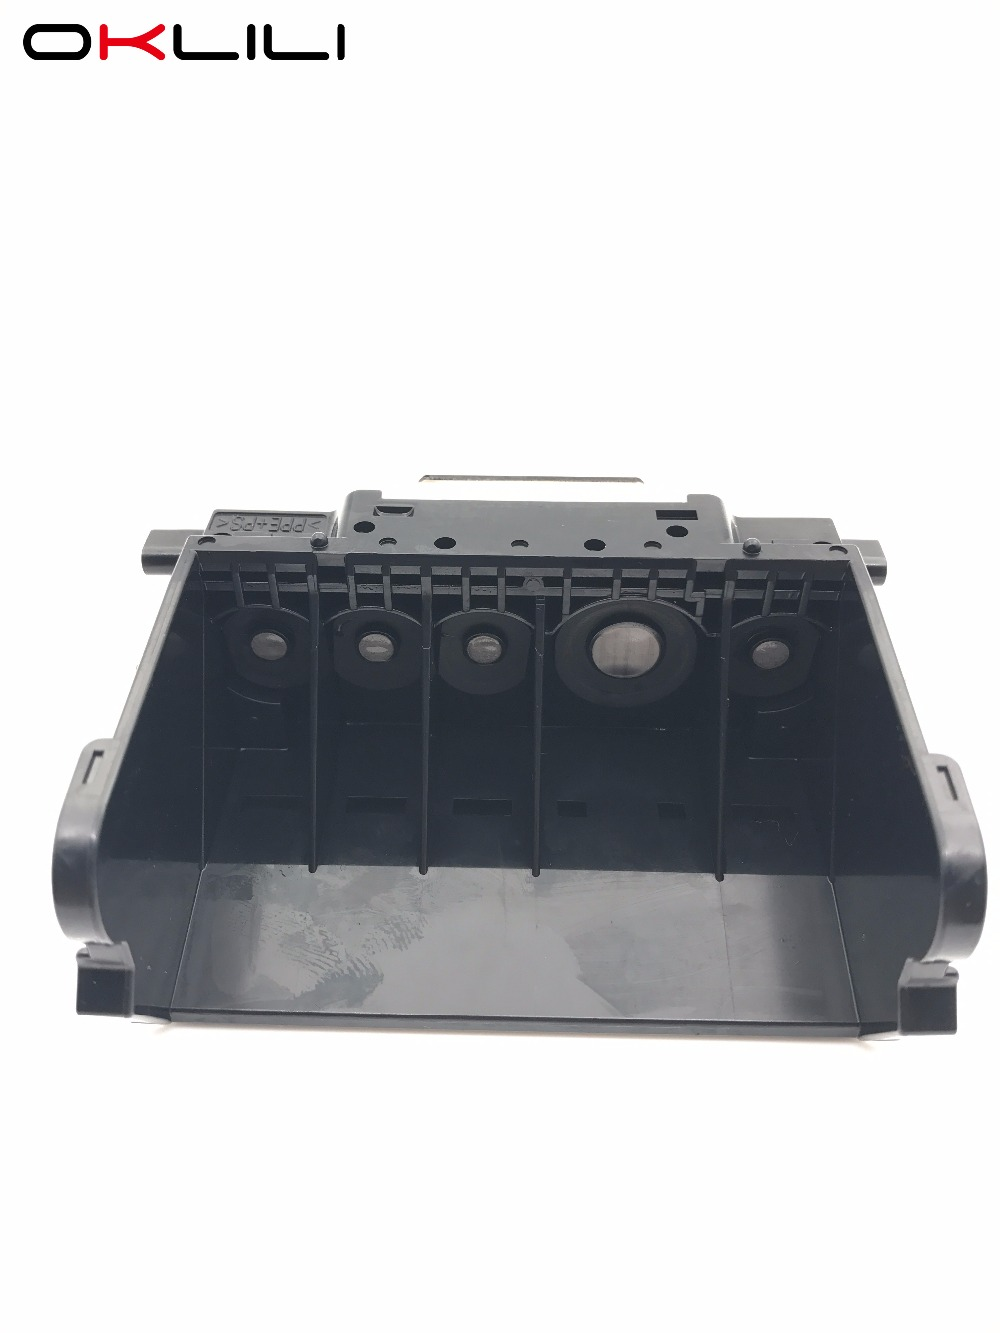 OKLILI ORIGINAL QY6-0075 QY6-0075-000 Printhead Print Head Printer Head for Canon iP5300 MP810 iP4500 MP610 MX850 original refurbished print head qy6 0039 printhead compatible for canon s900 s9000 i9100 bjf9000 f900 f930 printer head